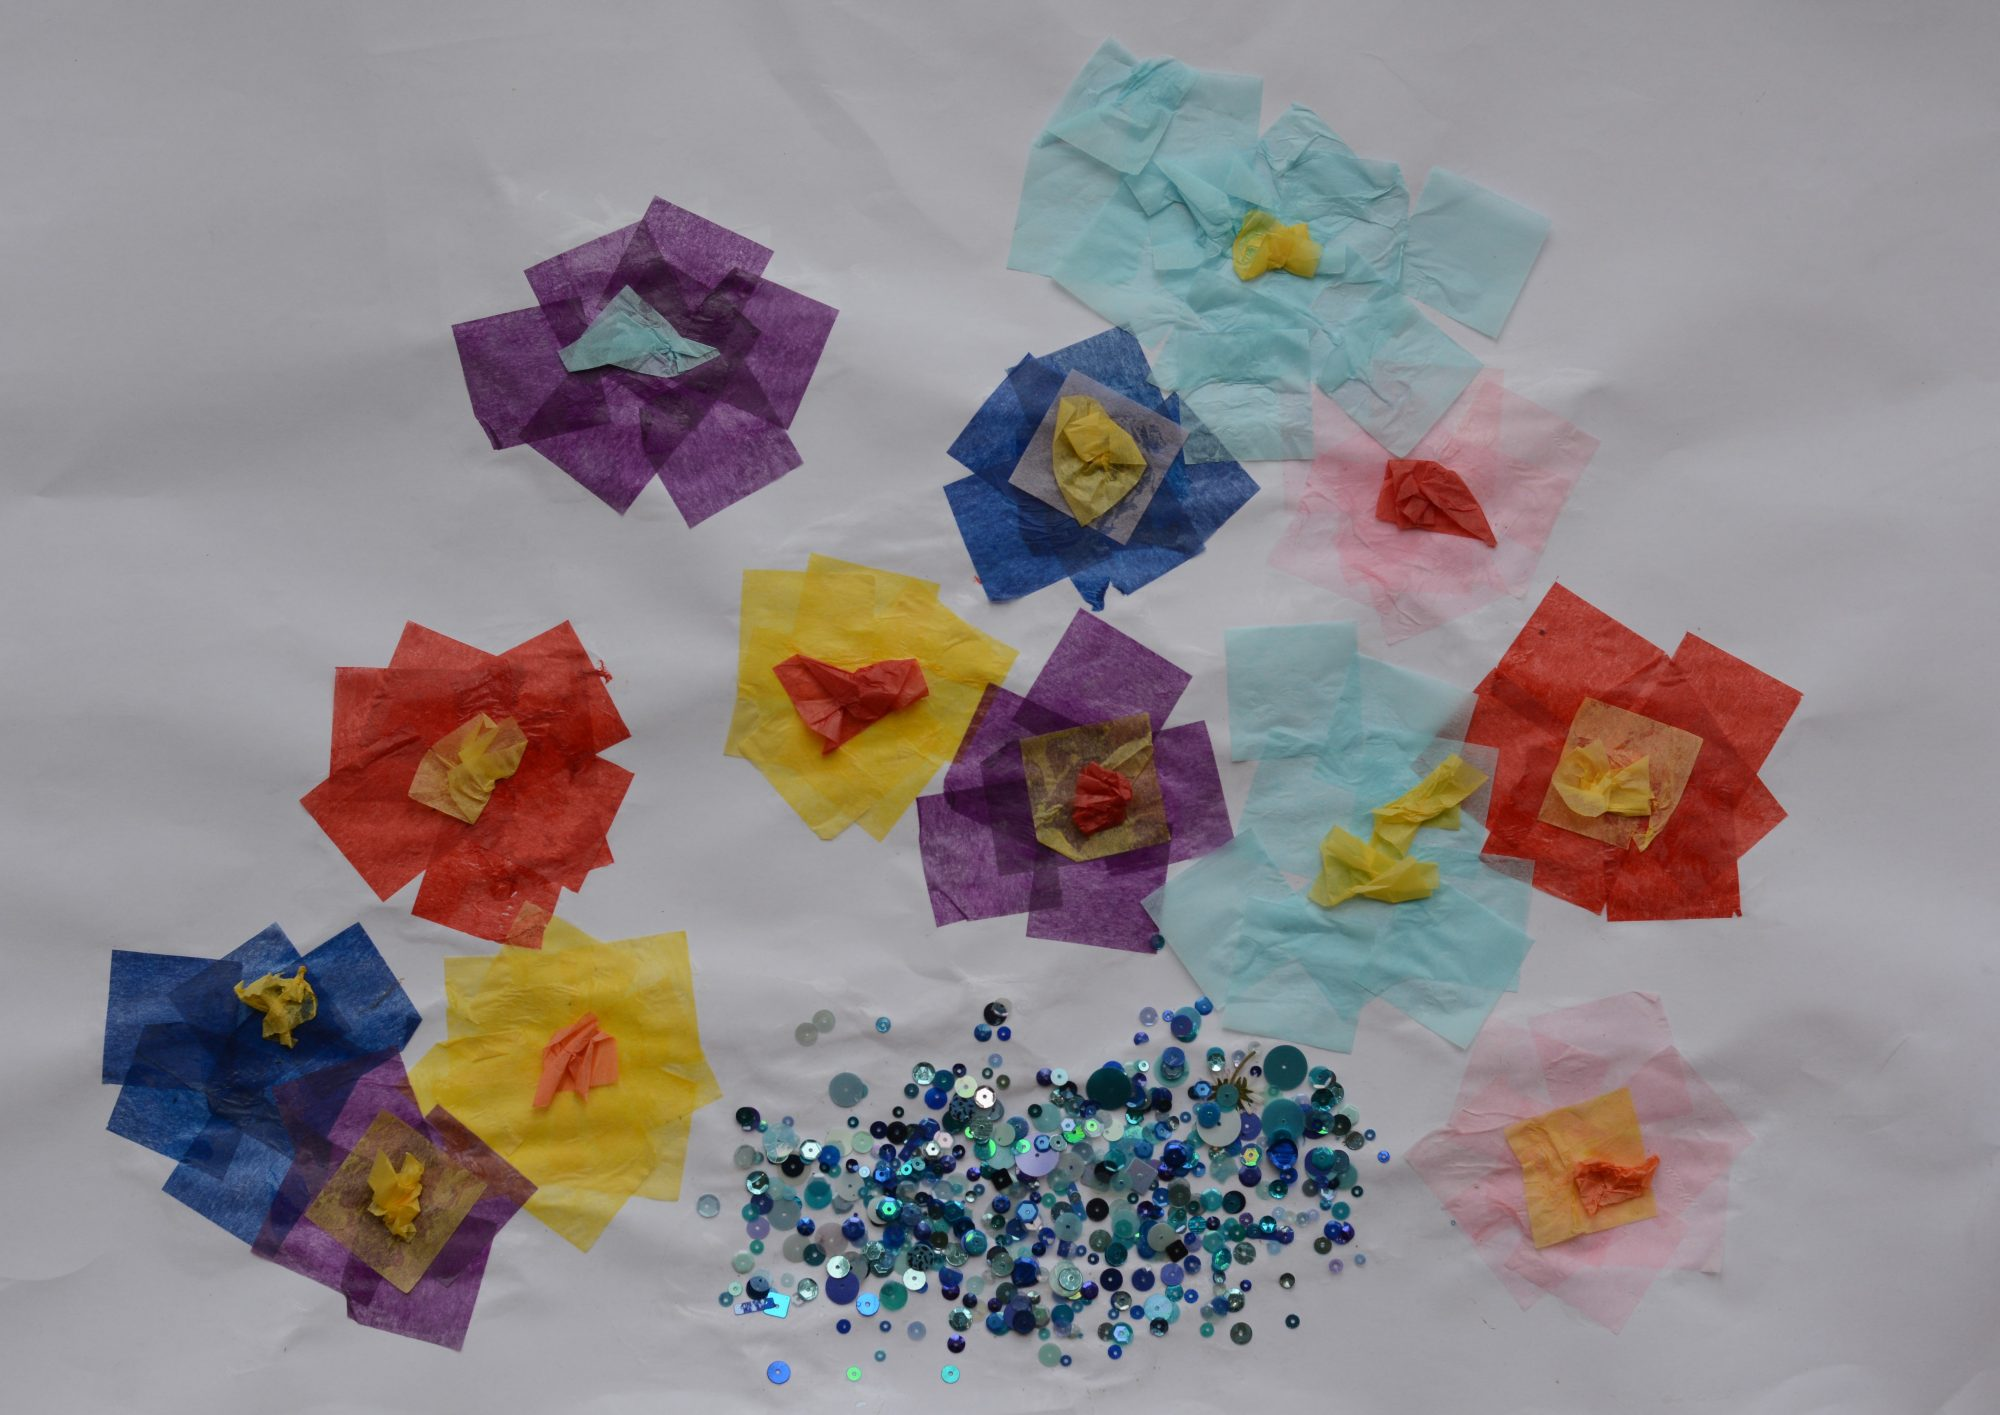 flower collage using coloured tissue paper and sequins